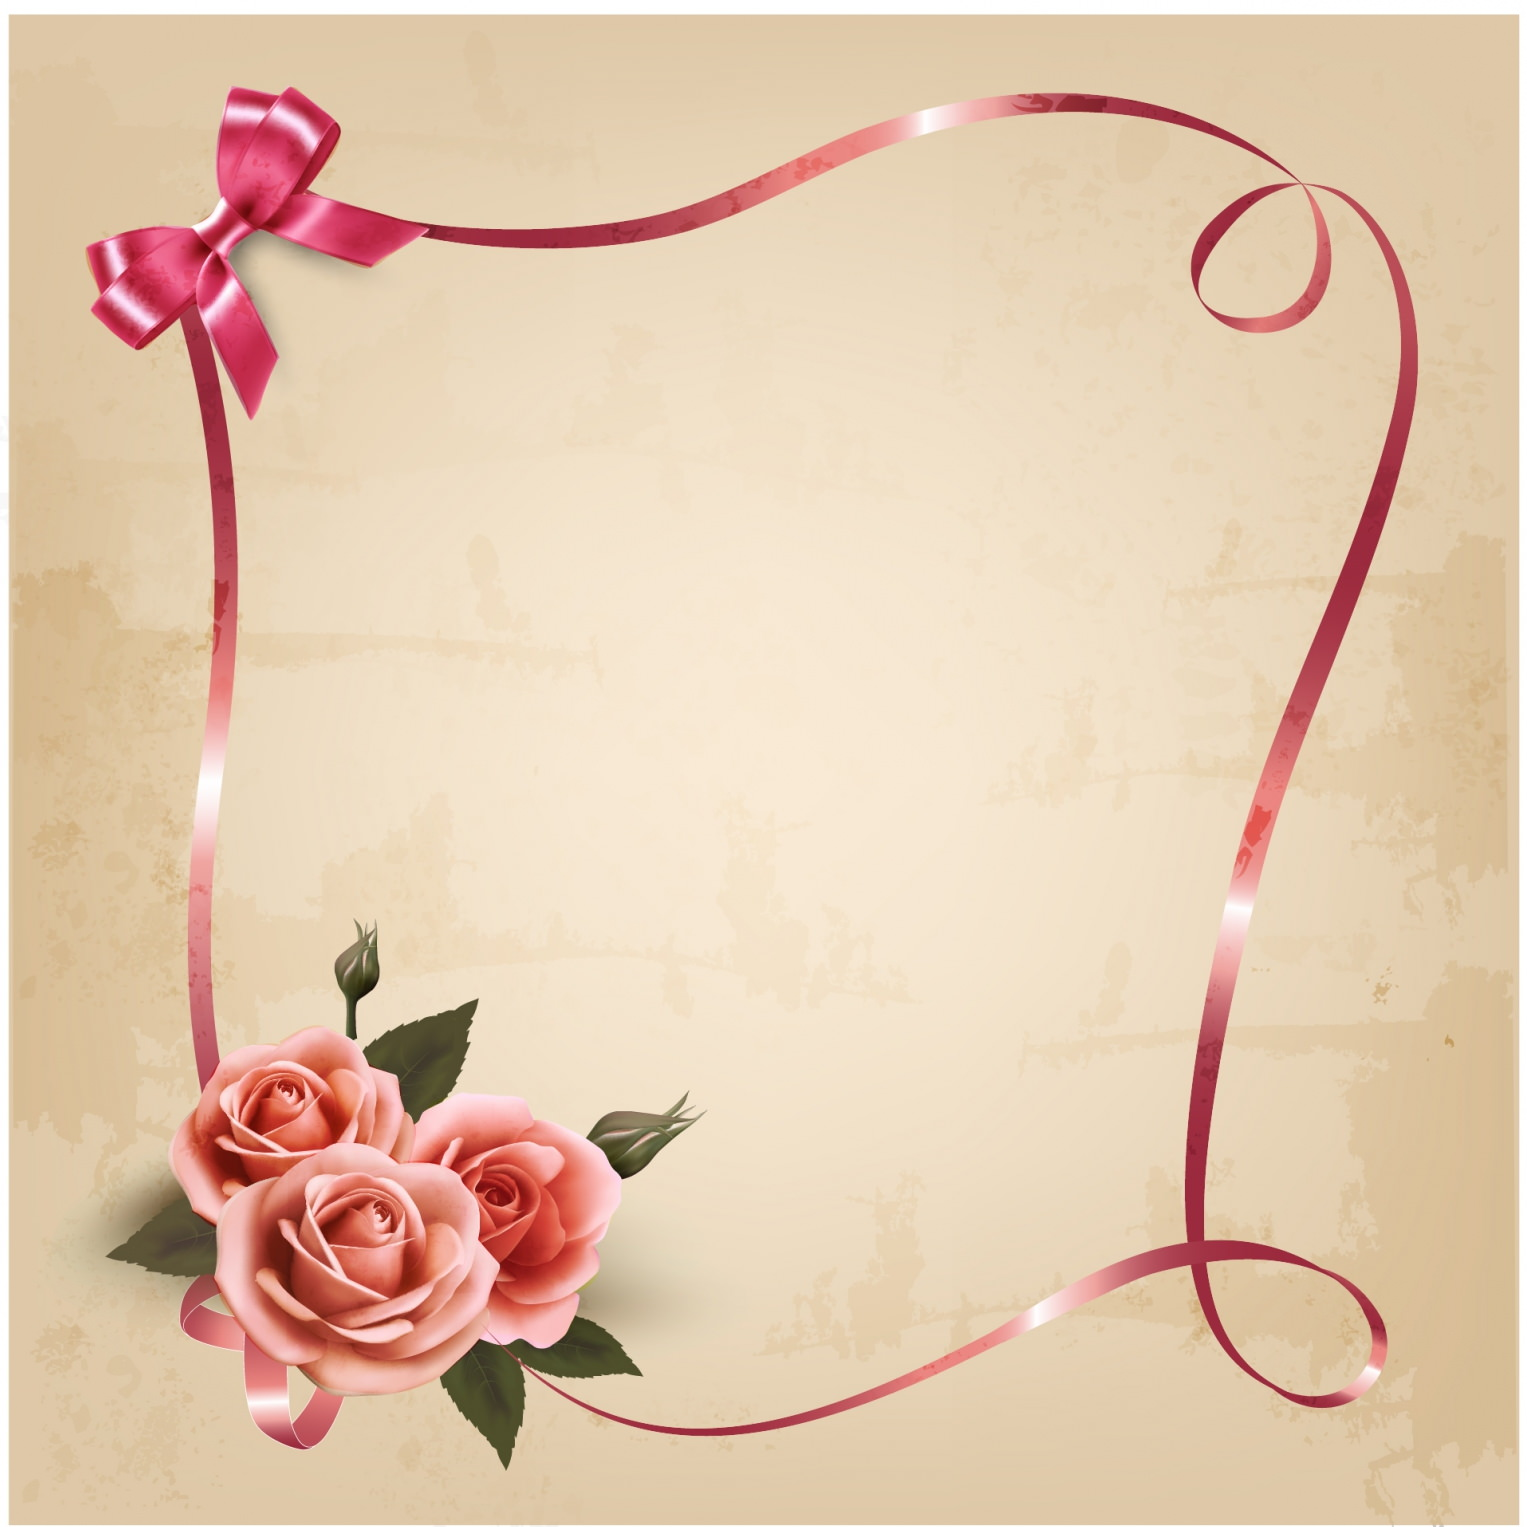 Holiday Background with Pink Roses and Ribbons